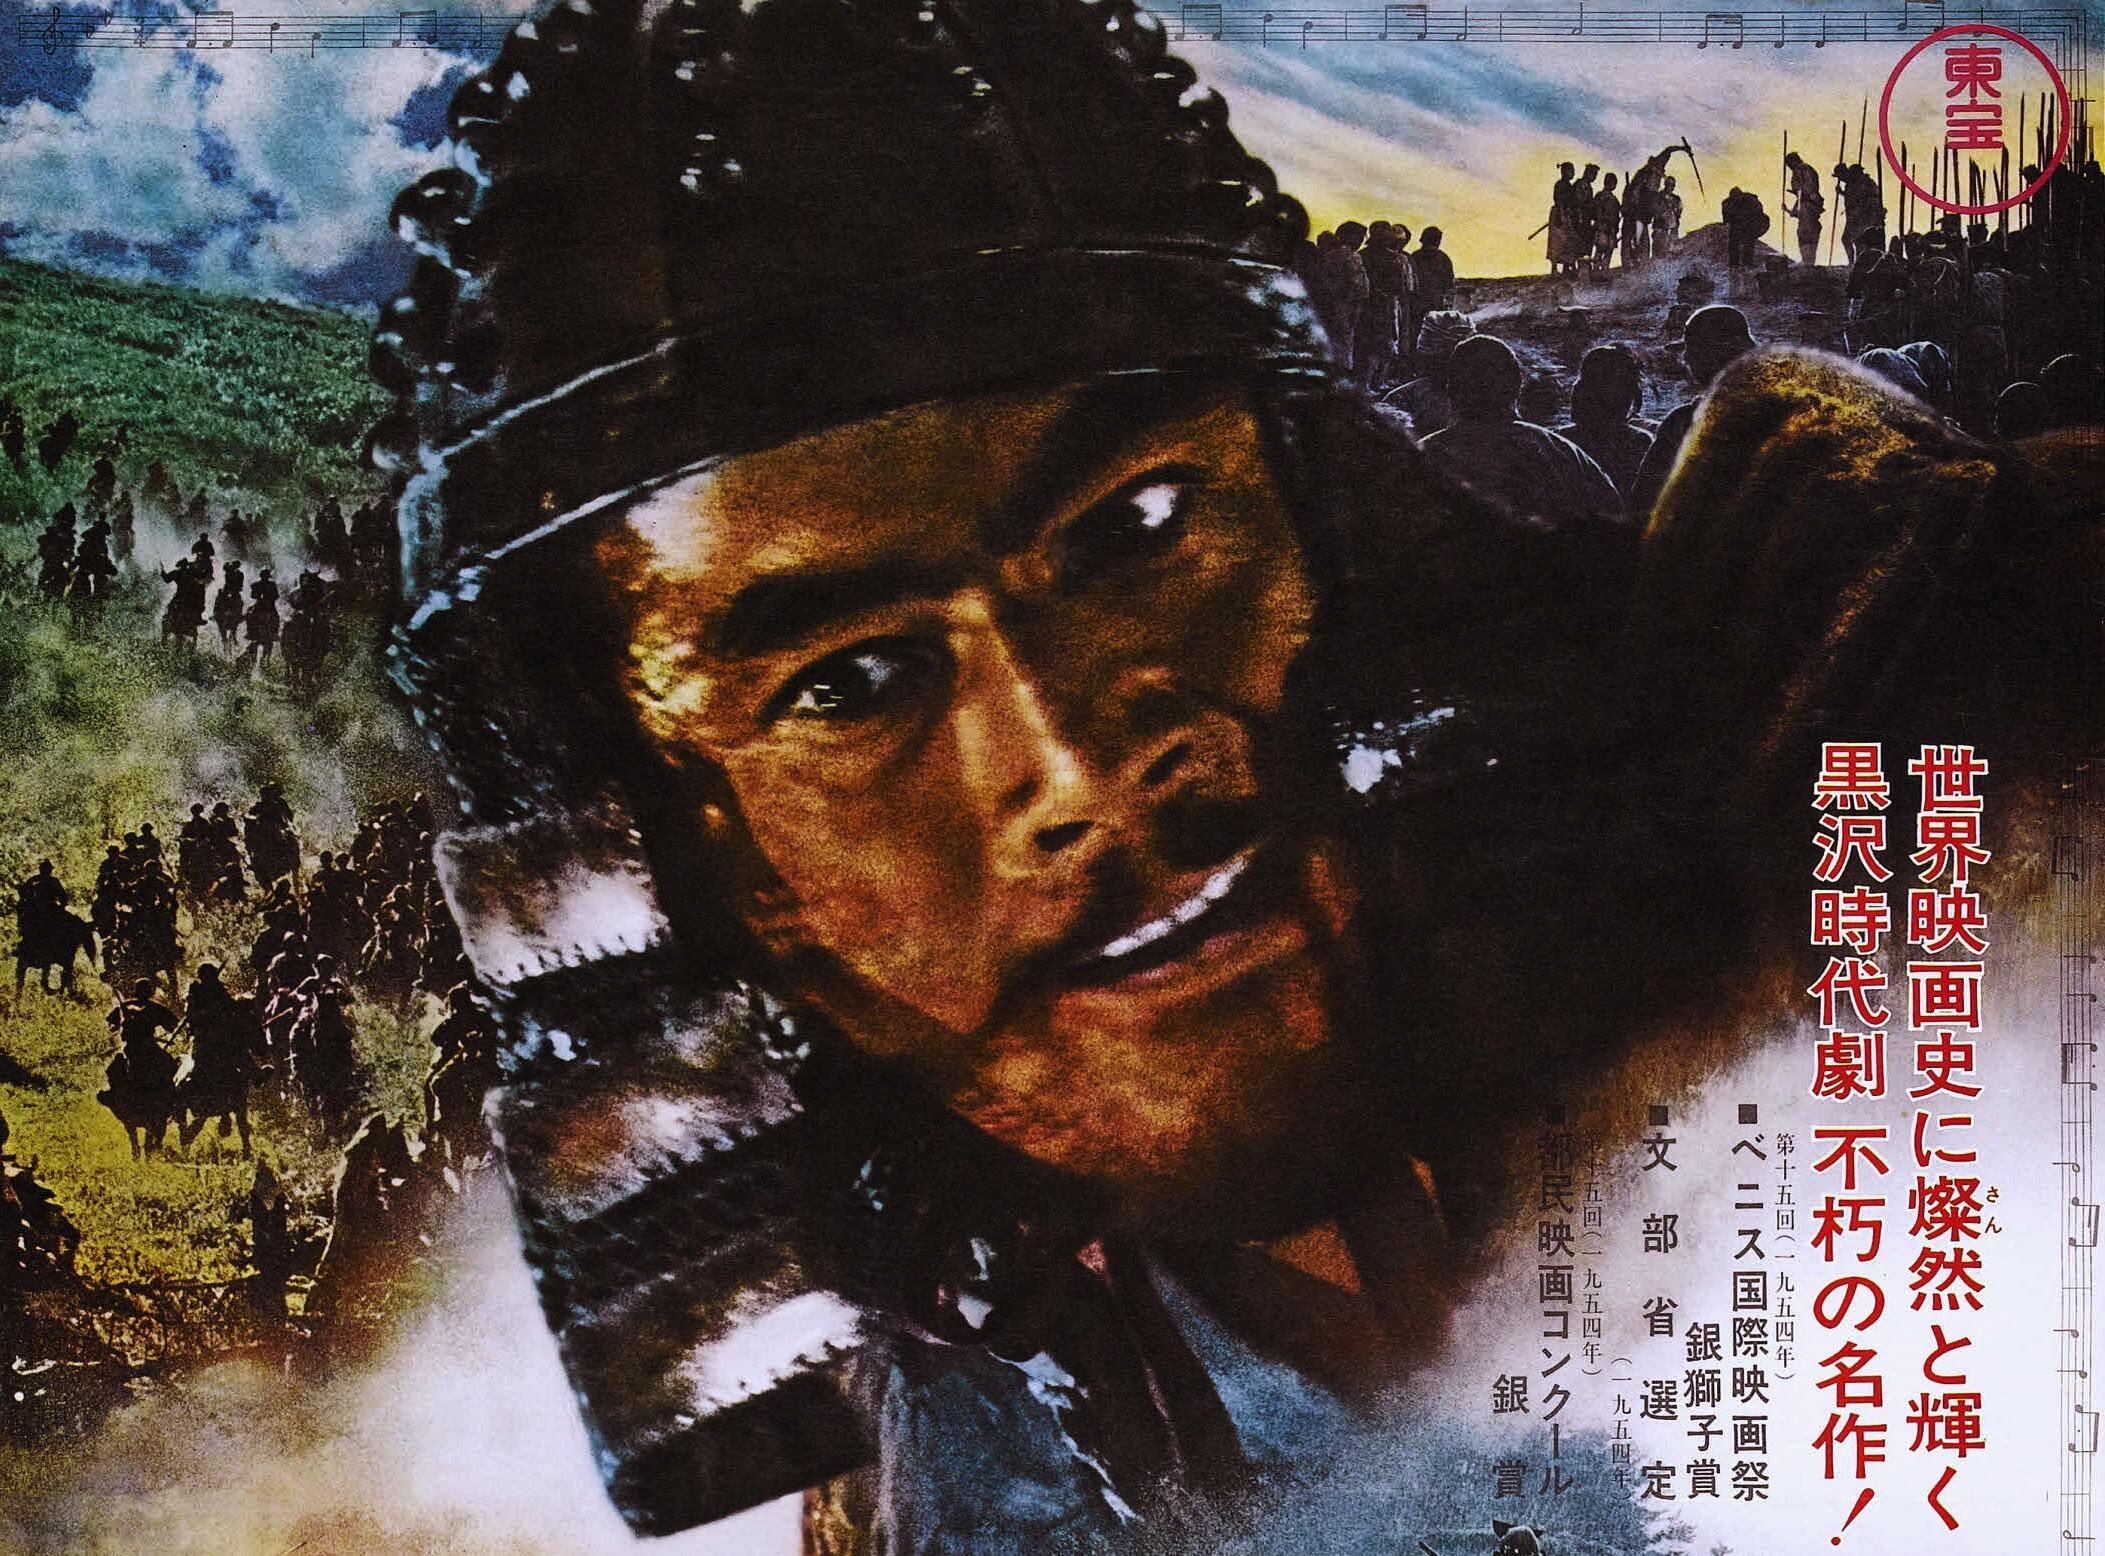 <p>Akira Kurasawa's Seven Samurai, which partly inspired Star Wars, which inspired Zack Snyder's Rebel Moon (which also sounds a lot like it was inspired by Seven Samurai).</p>